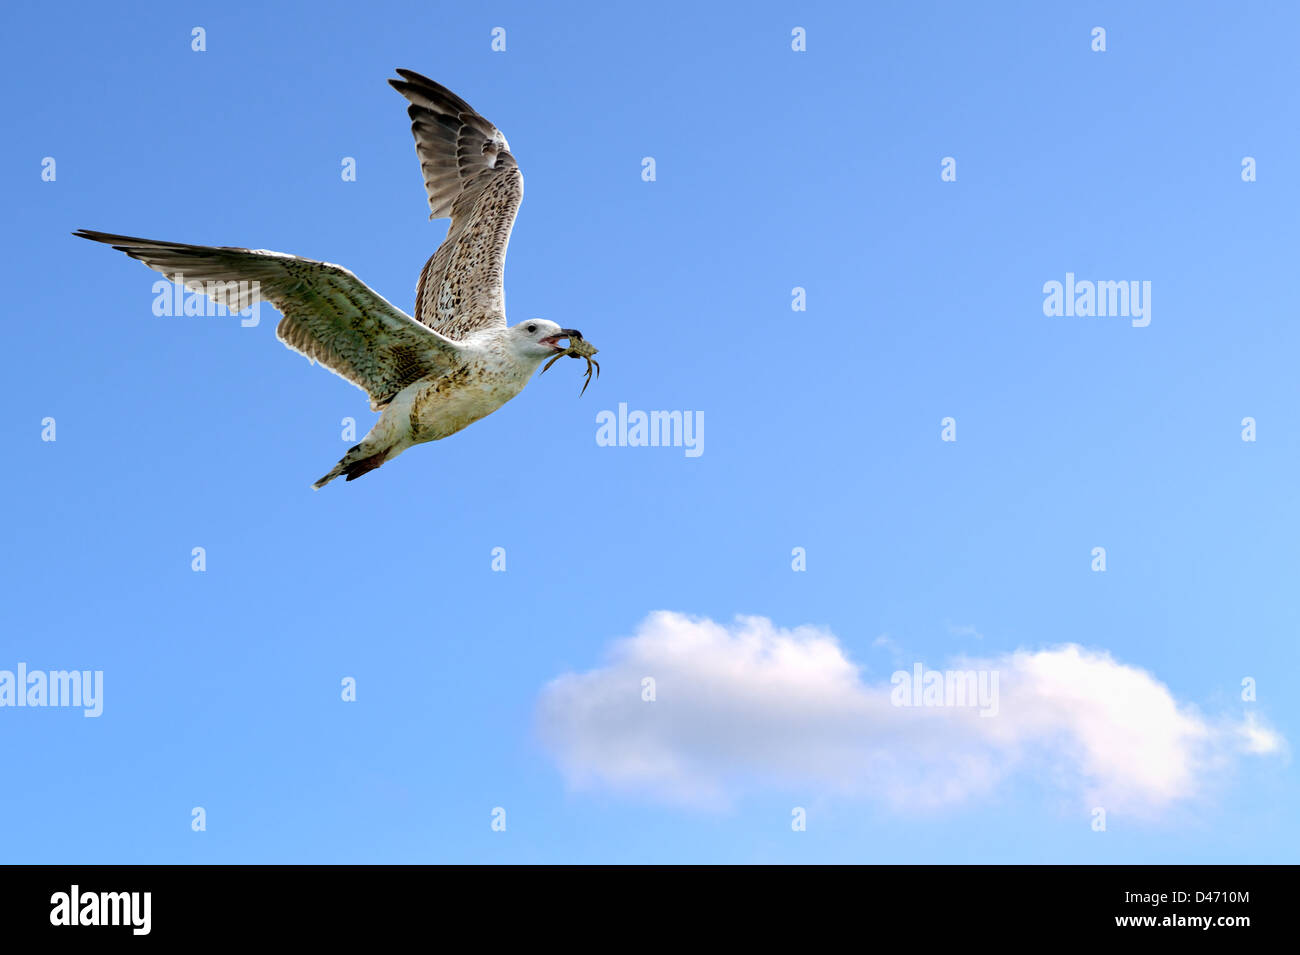 Seagull in flight with crab in its beak. - Stock Image